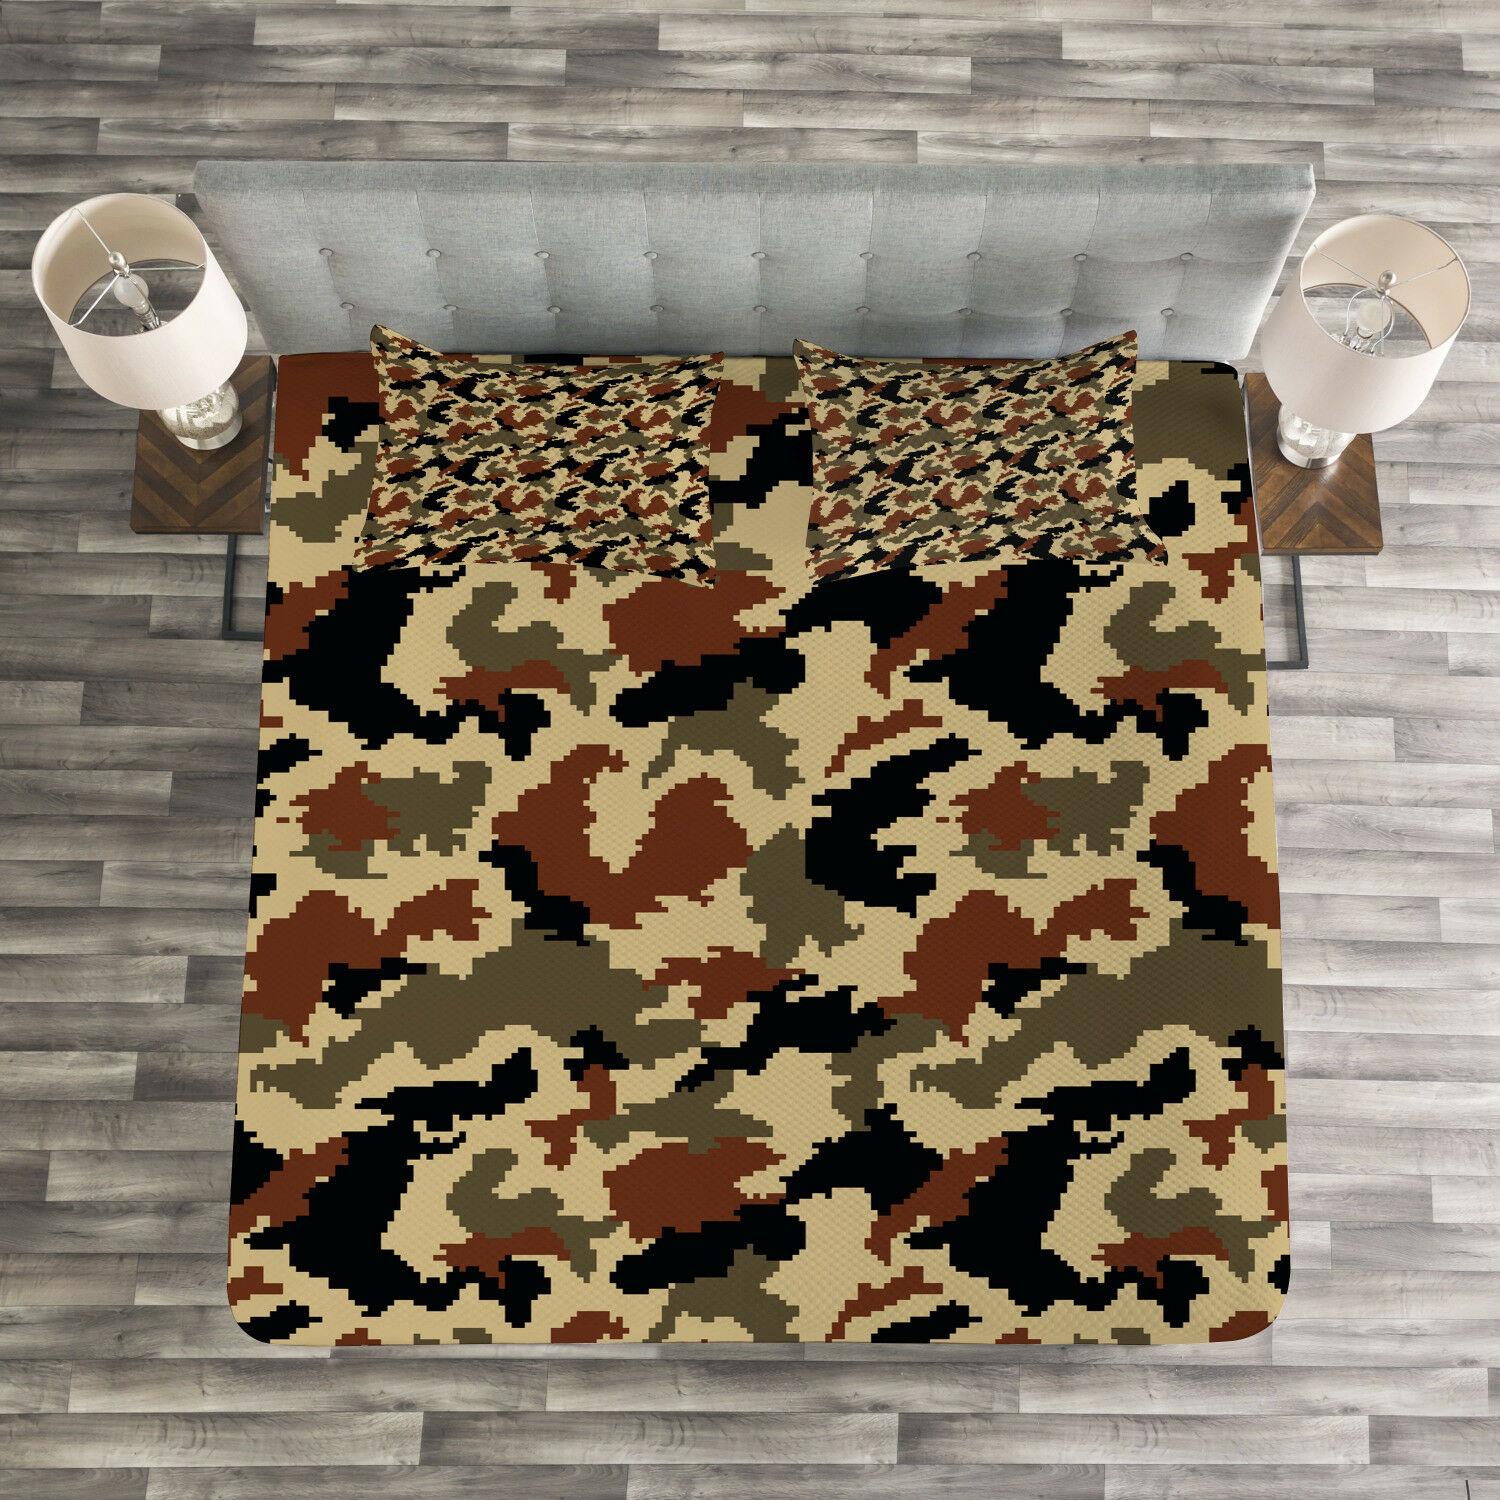 Camouflage Quilted Bedspread & Pillow Shams Set, Pixel Art Abstract Print